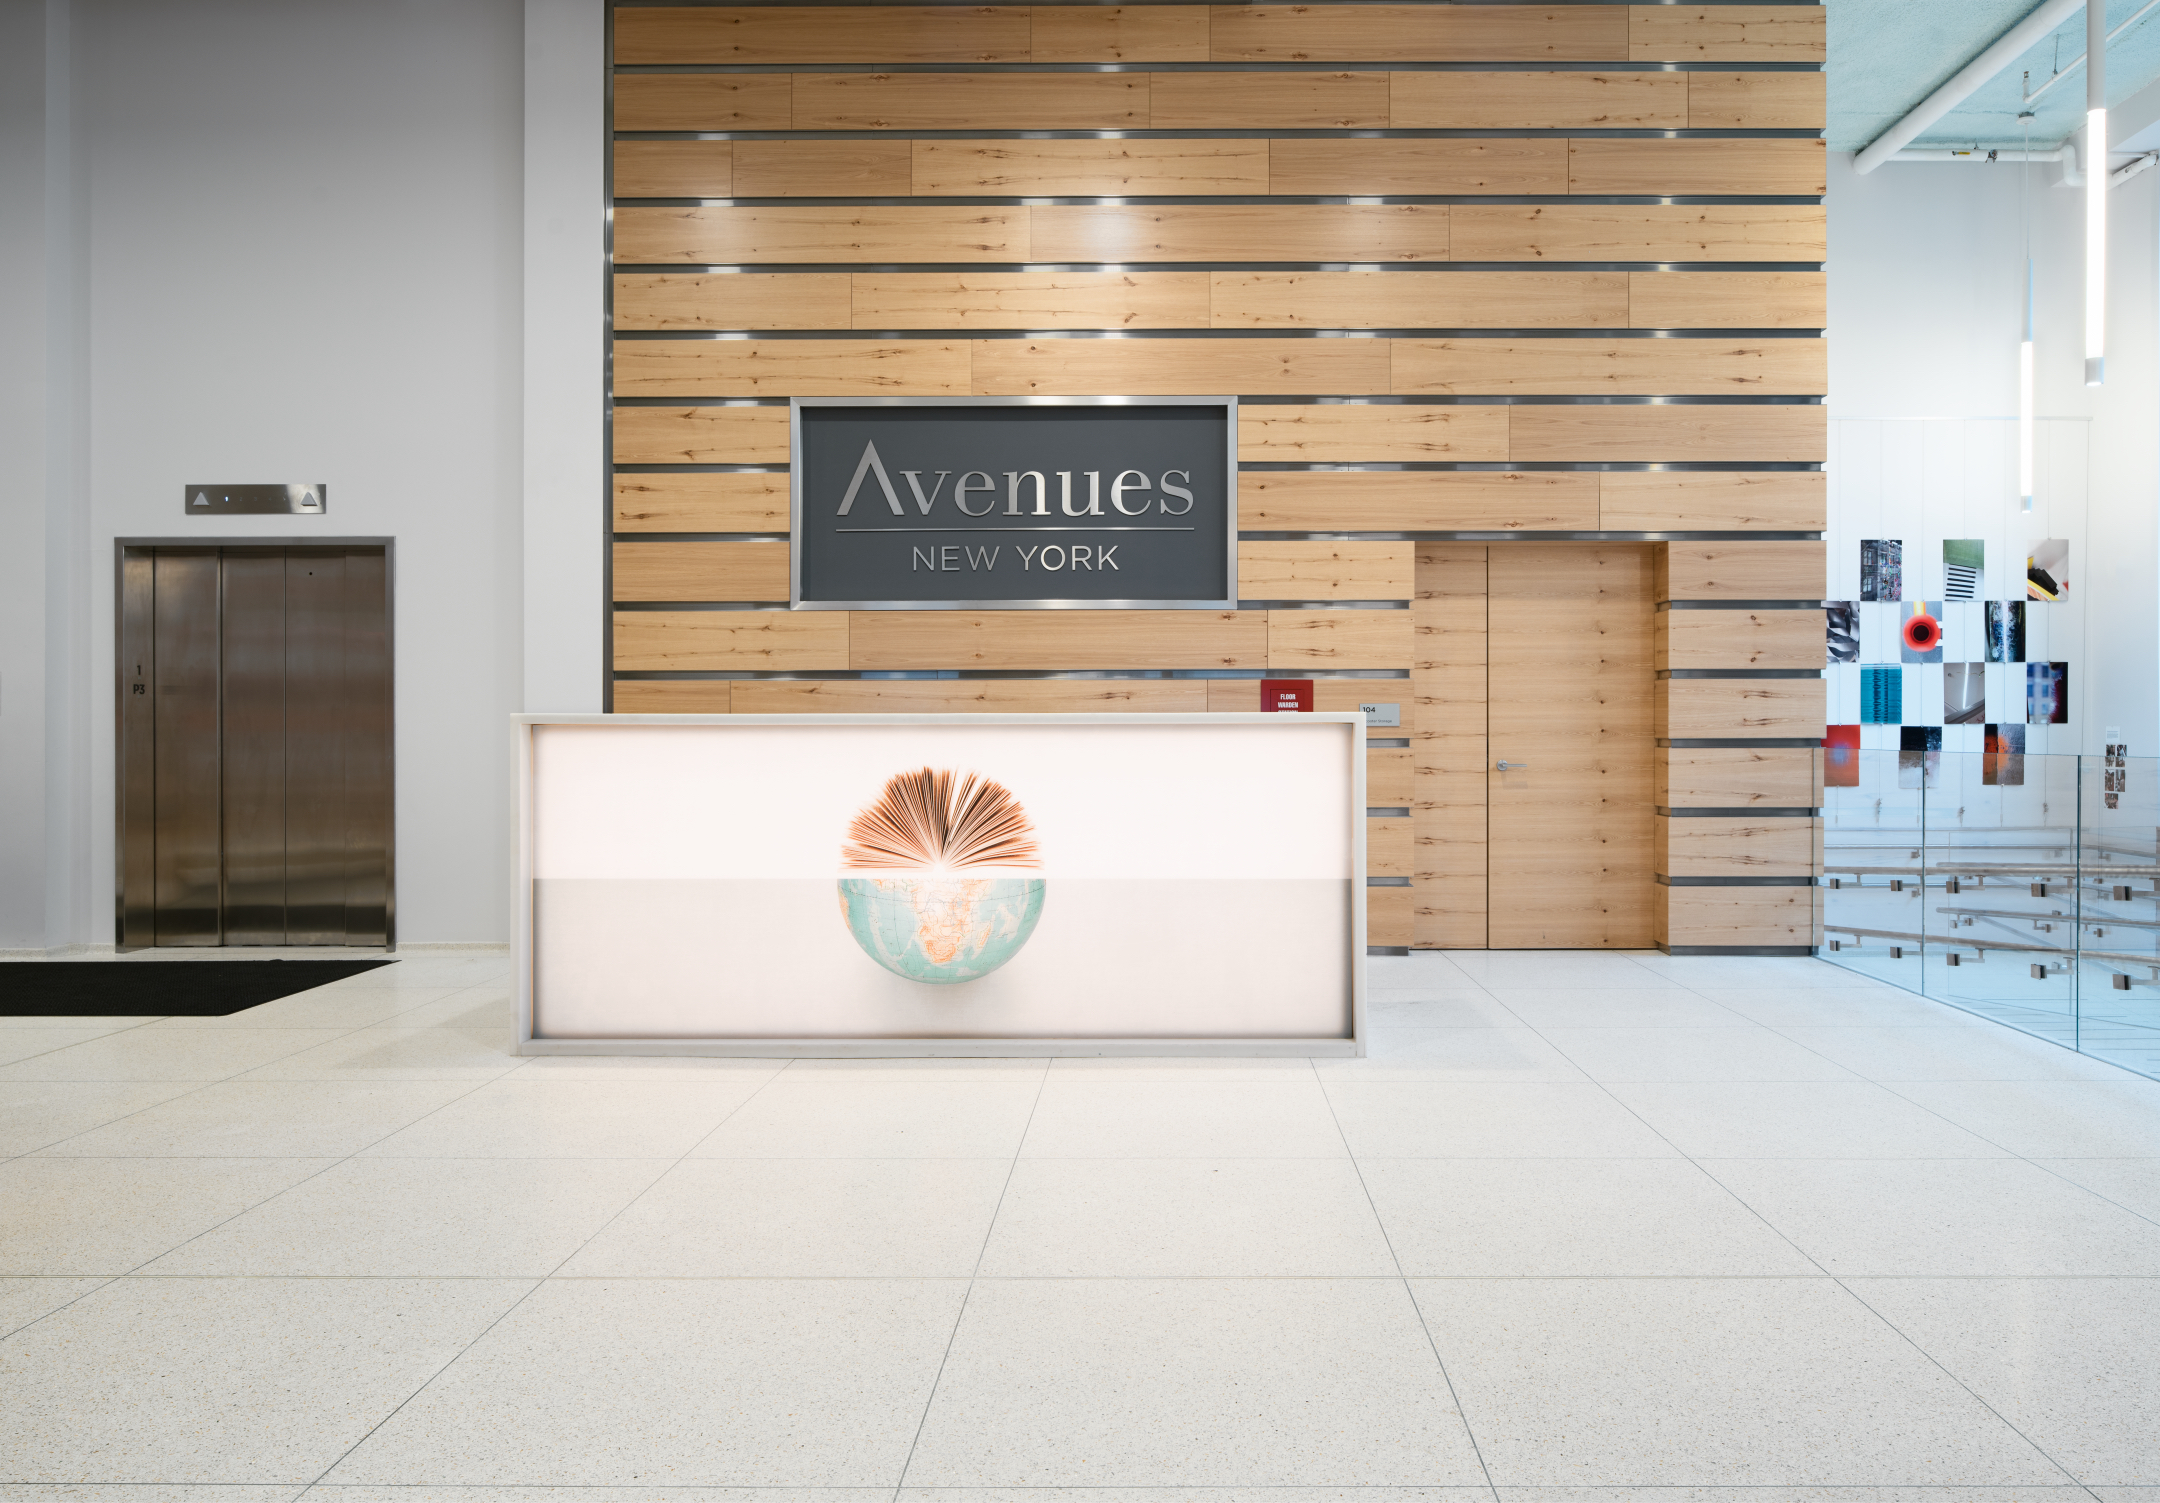 Avenues: New York - Entrance Lobby